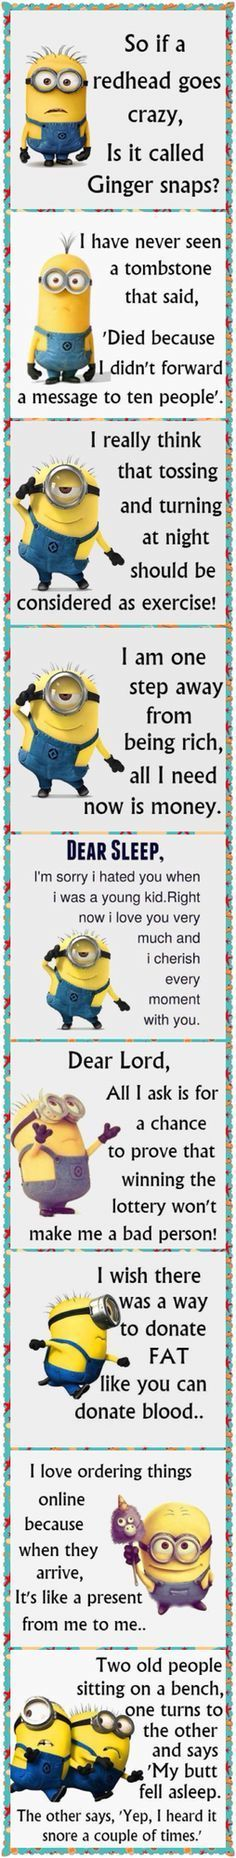 Minion funnies... - funnies, funny minion quotes, Minion, Minion Quote Of The Day - Minion-Quotes.com Minion Humour, Funny Minion Memes, Minions Quotes, Jokes Quotes, Funny Texts, Funny Quotes, Minion Sayings, Life Quotes, Epic Texts